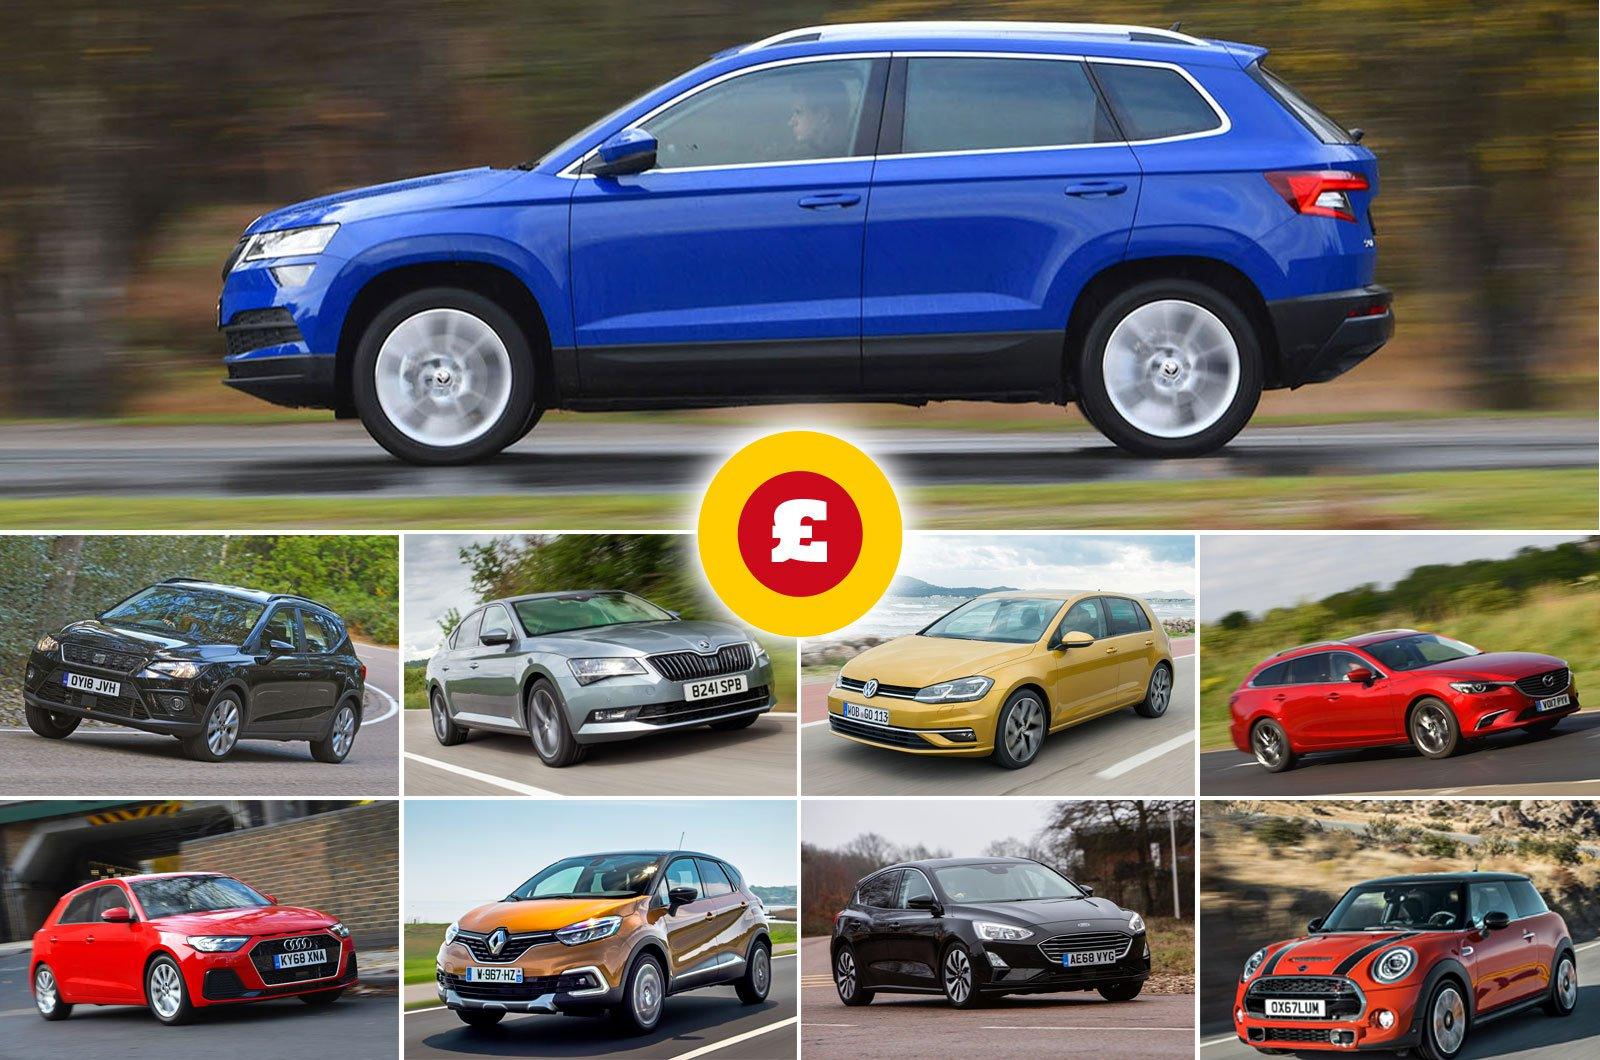 Best cars for £250 per month